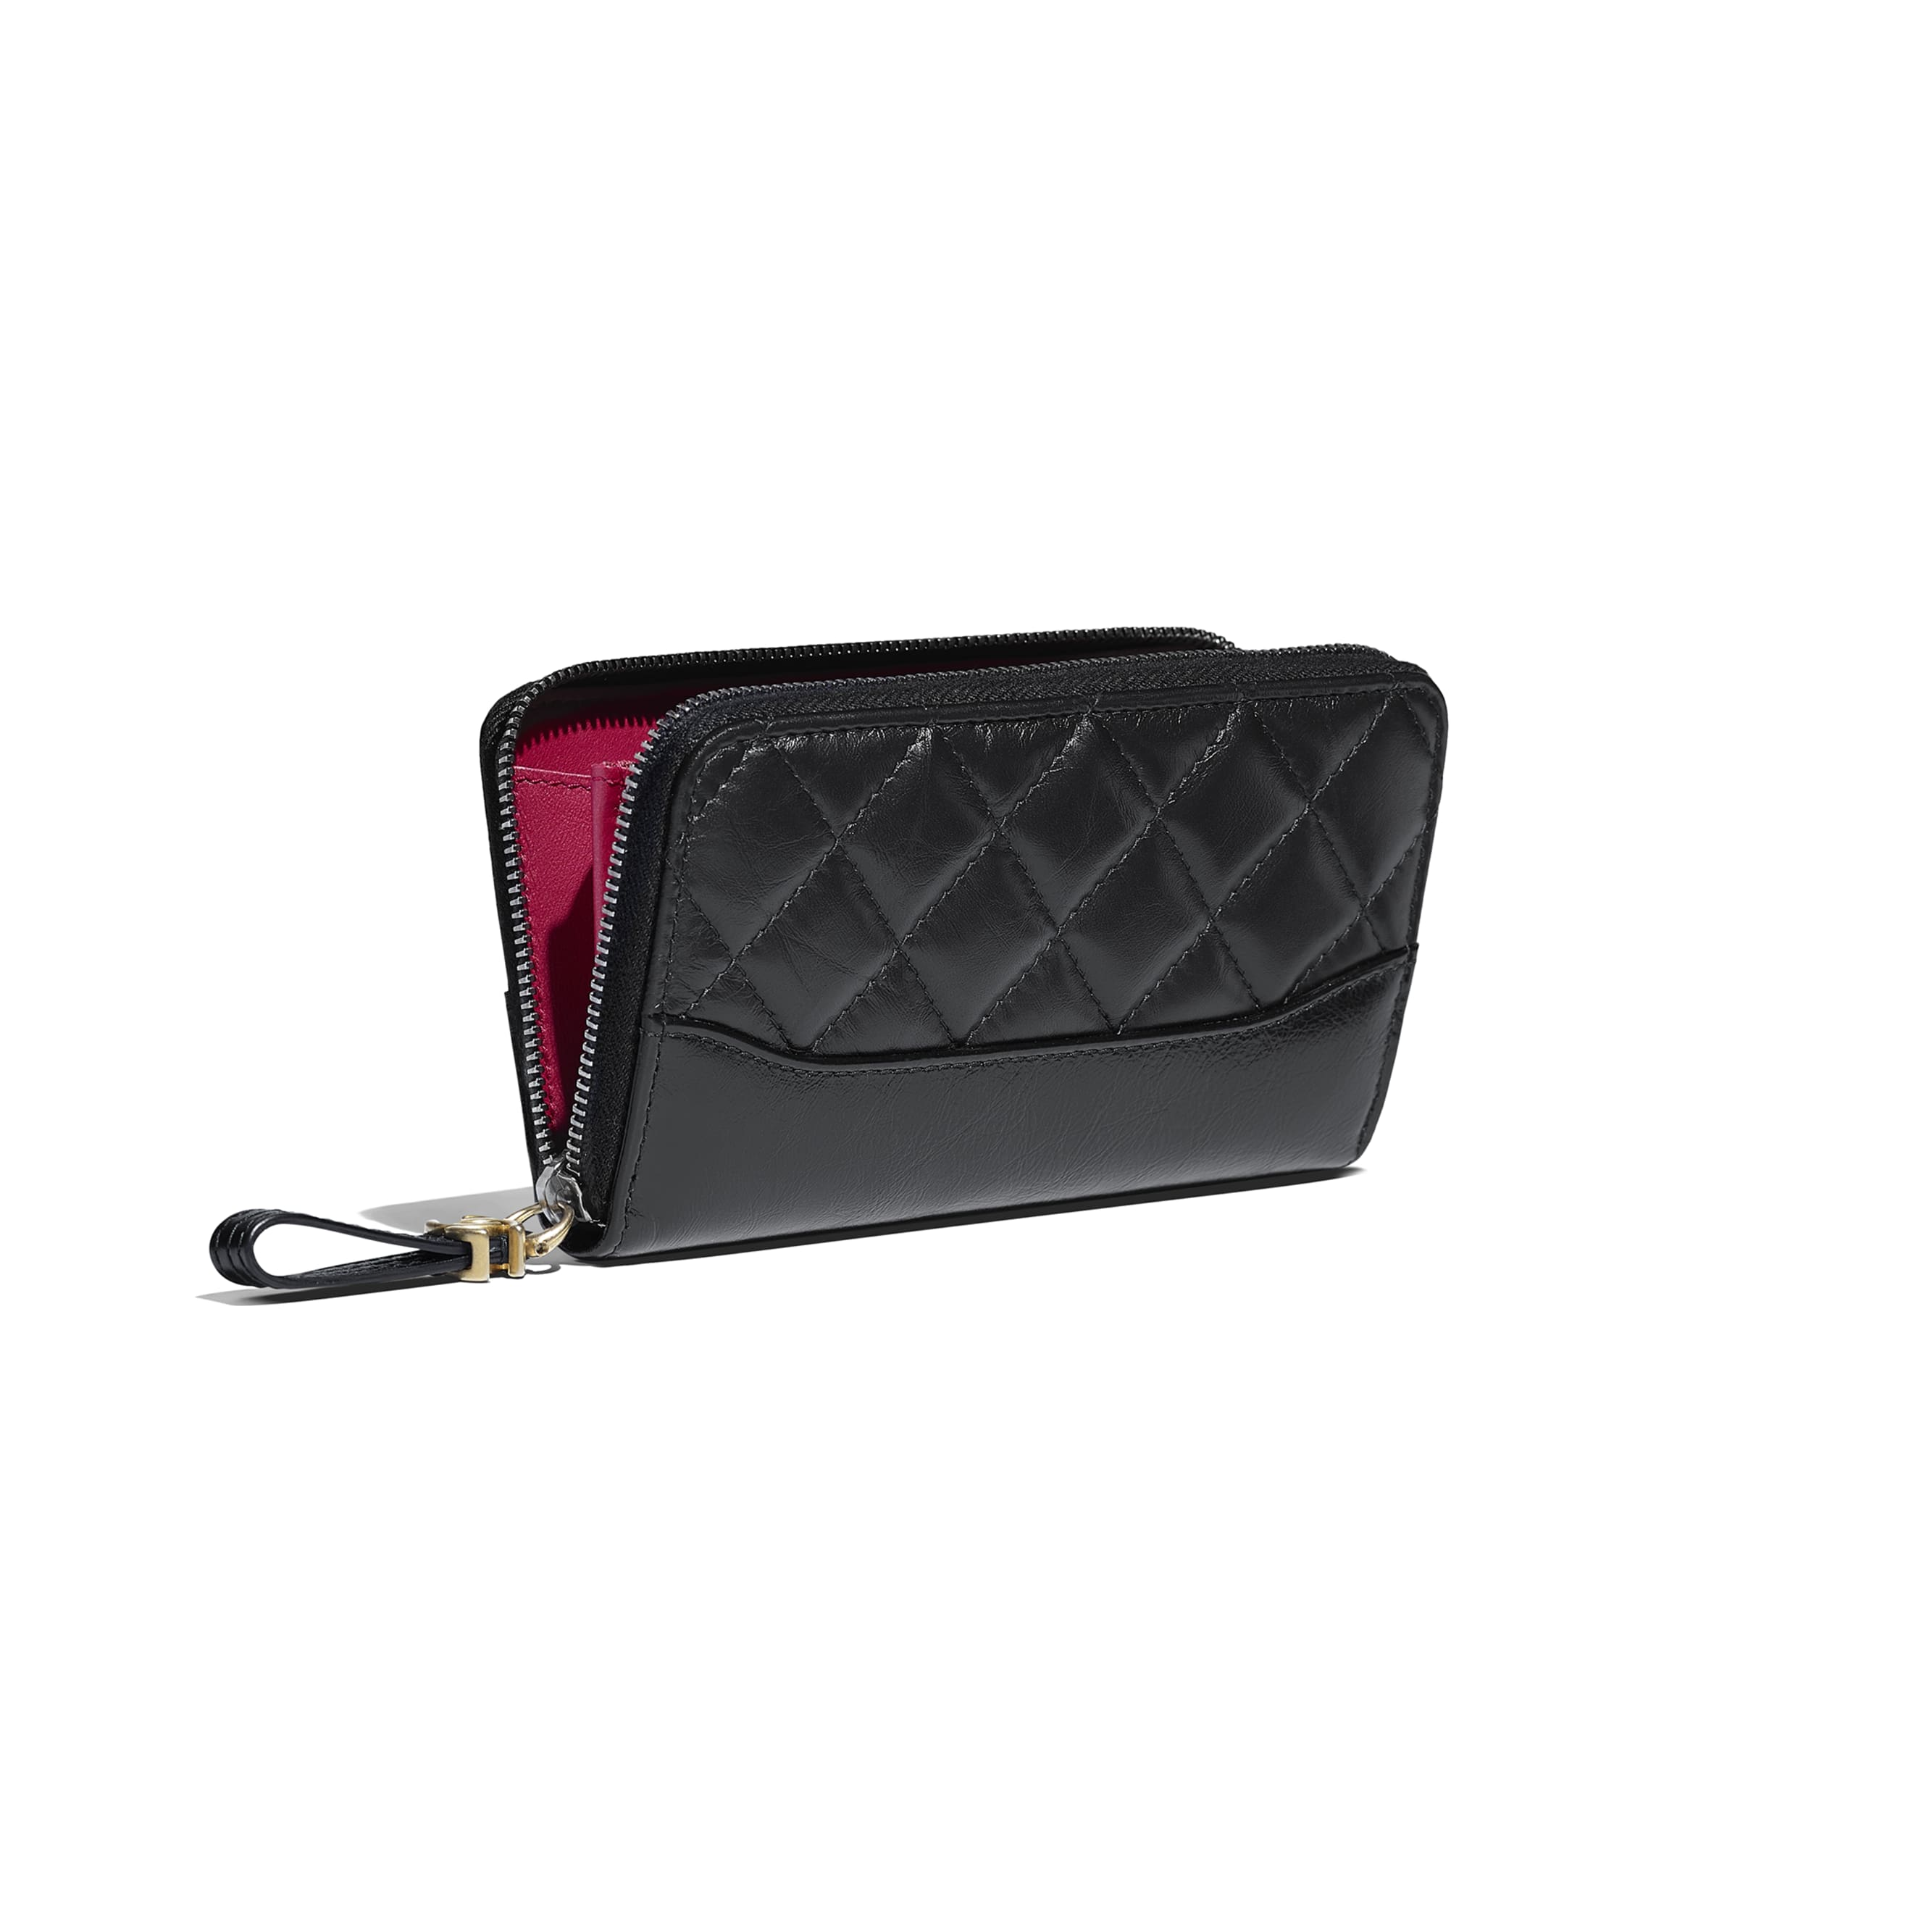 Zip Wallet - Black - Aged Calfskin, Smooth Calfskin, Gold-Tone, Silver-Tone & Ruthenium-Finish Metal - CHANEL - Other view - see standard sized version